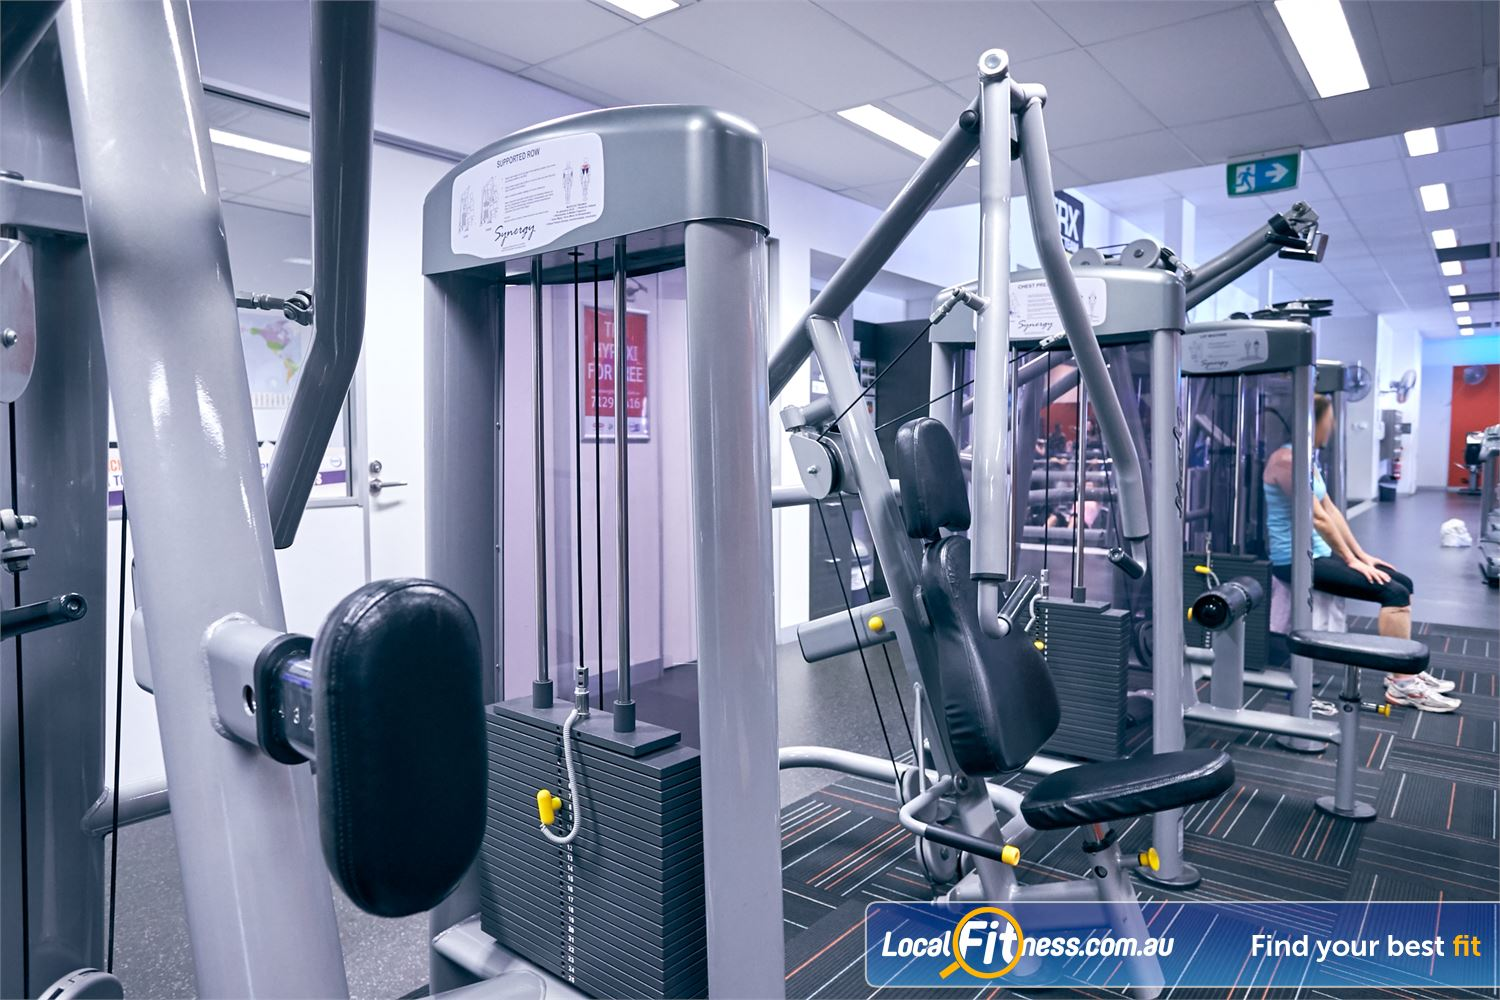 Goodlife Health Clubs Cross Roads Near Unley Park Our 24 hour Cross Roads gym includes state of the art equipment.